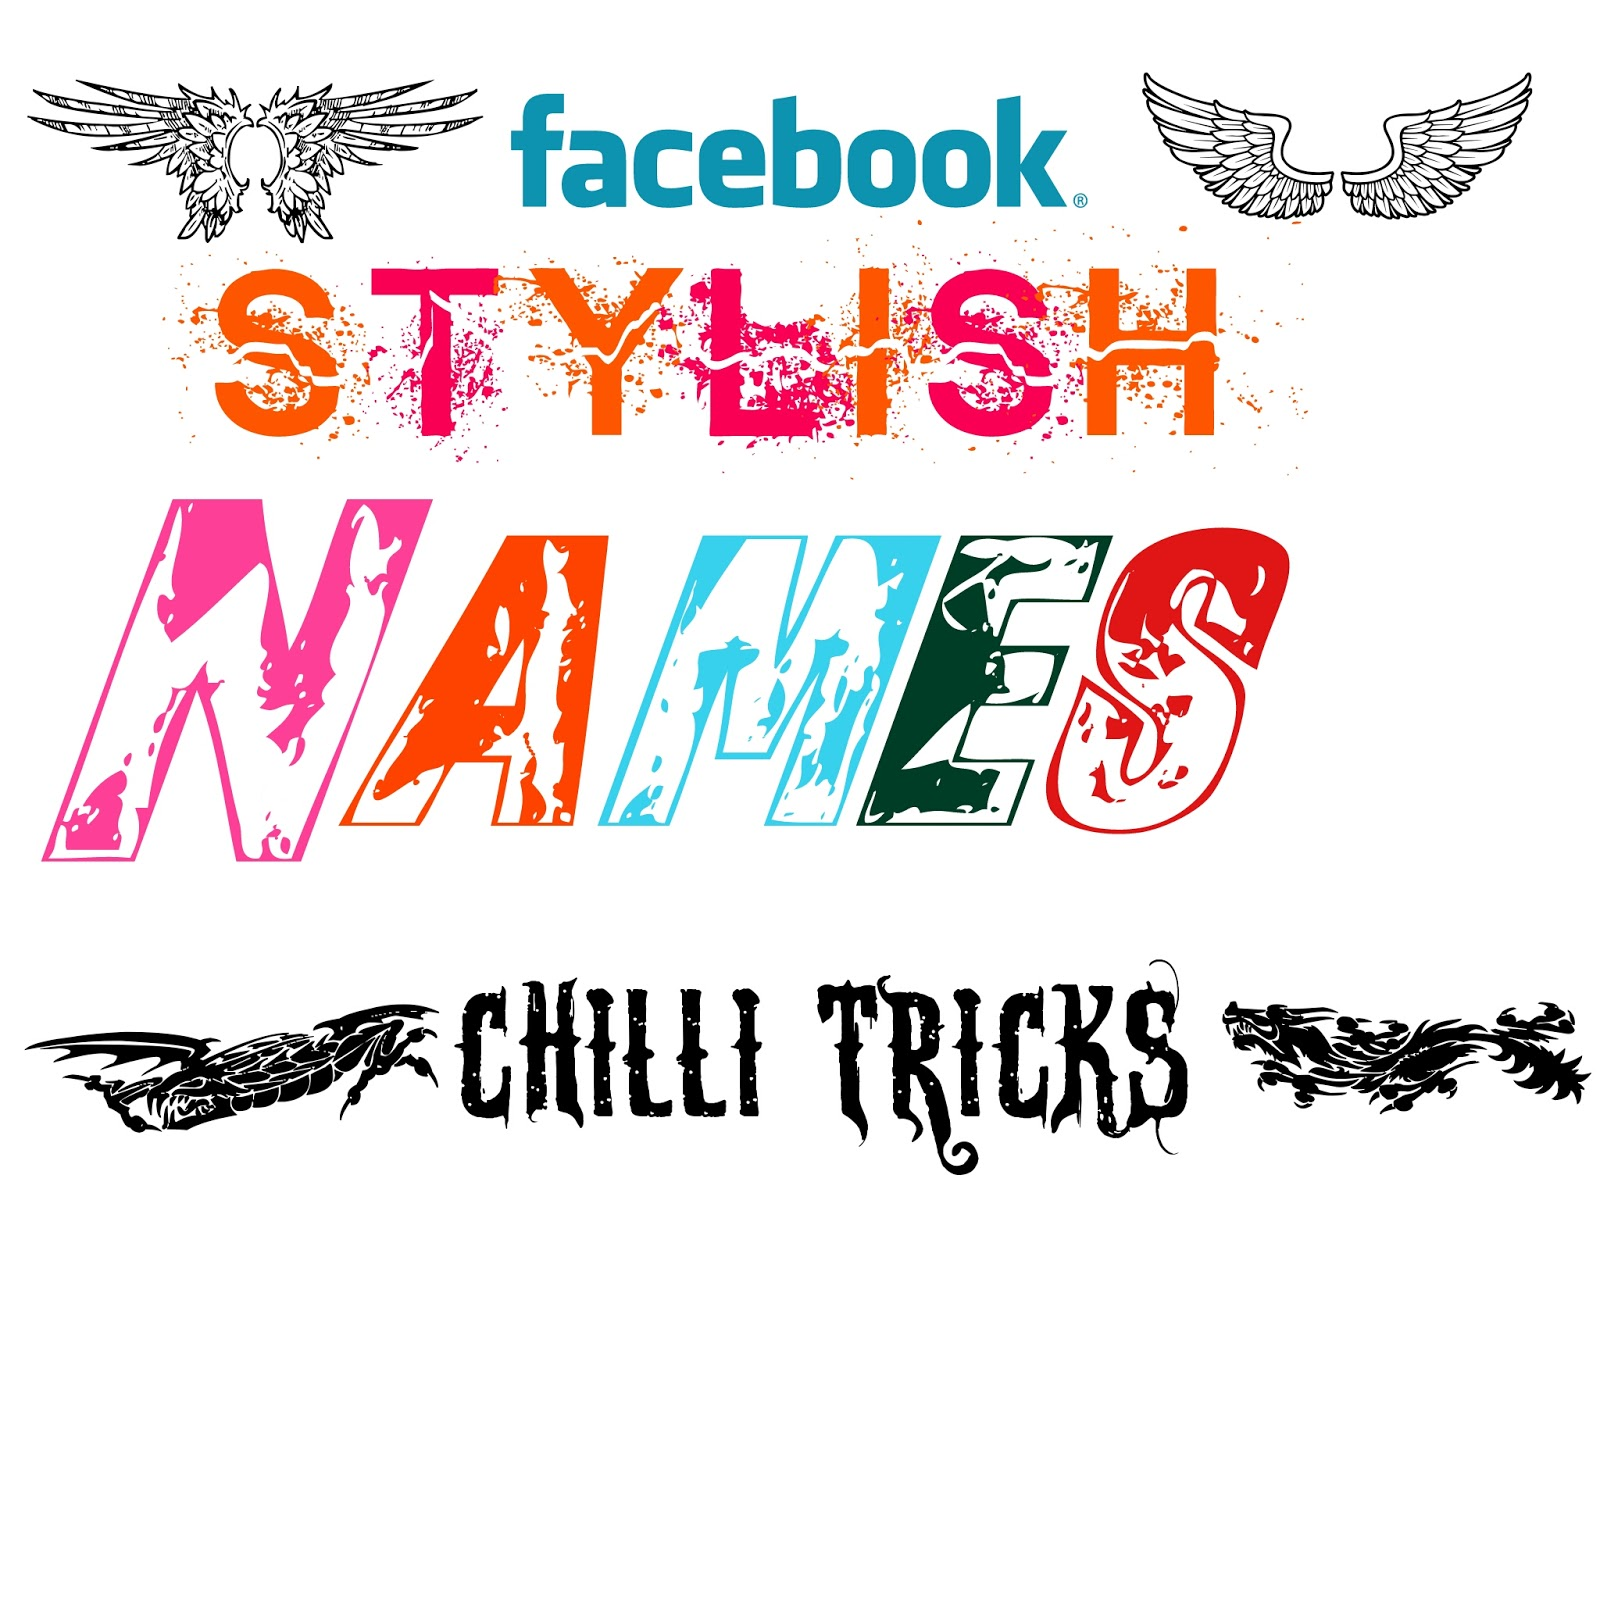 All Facebook Stylish Names Collection Chilli Tricks